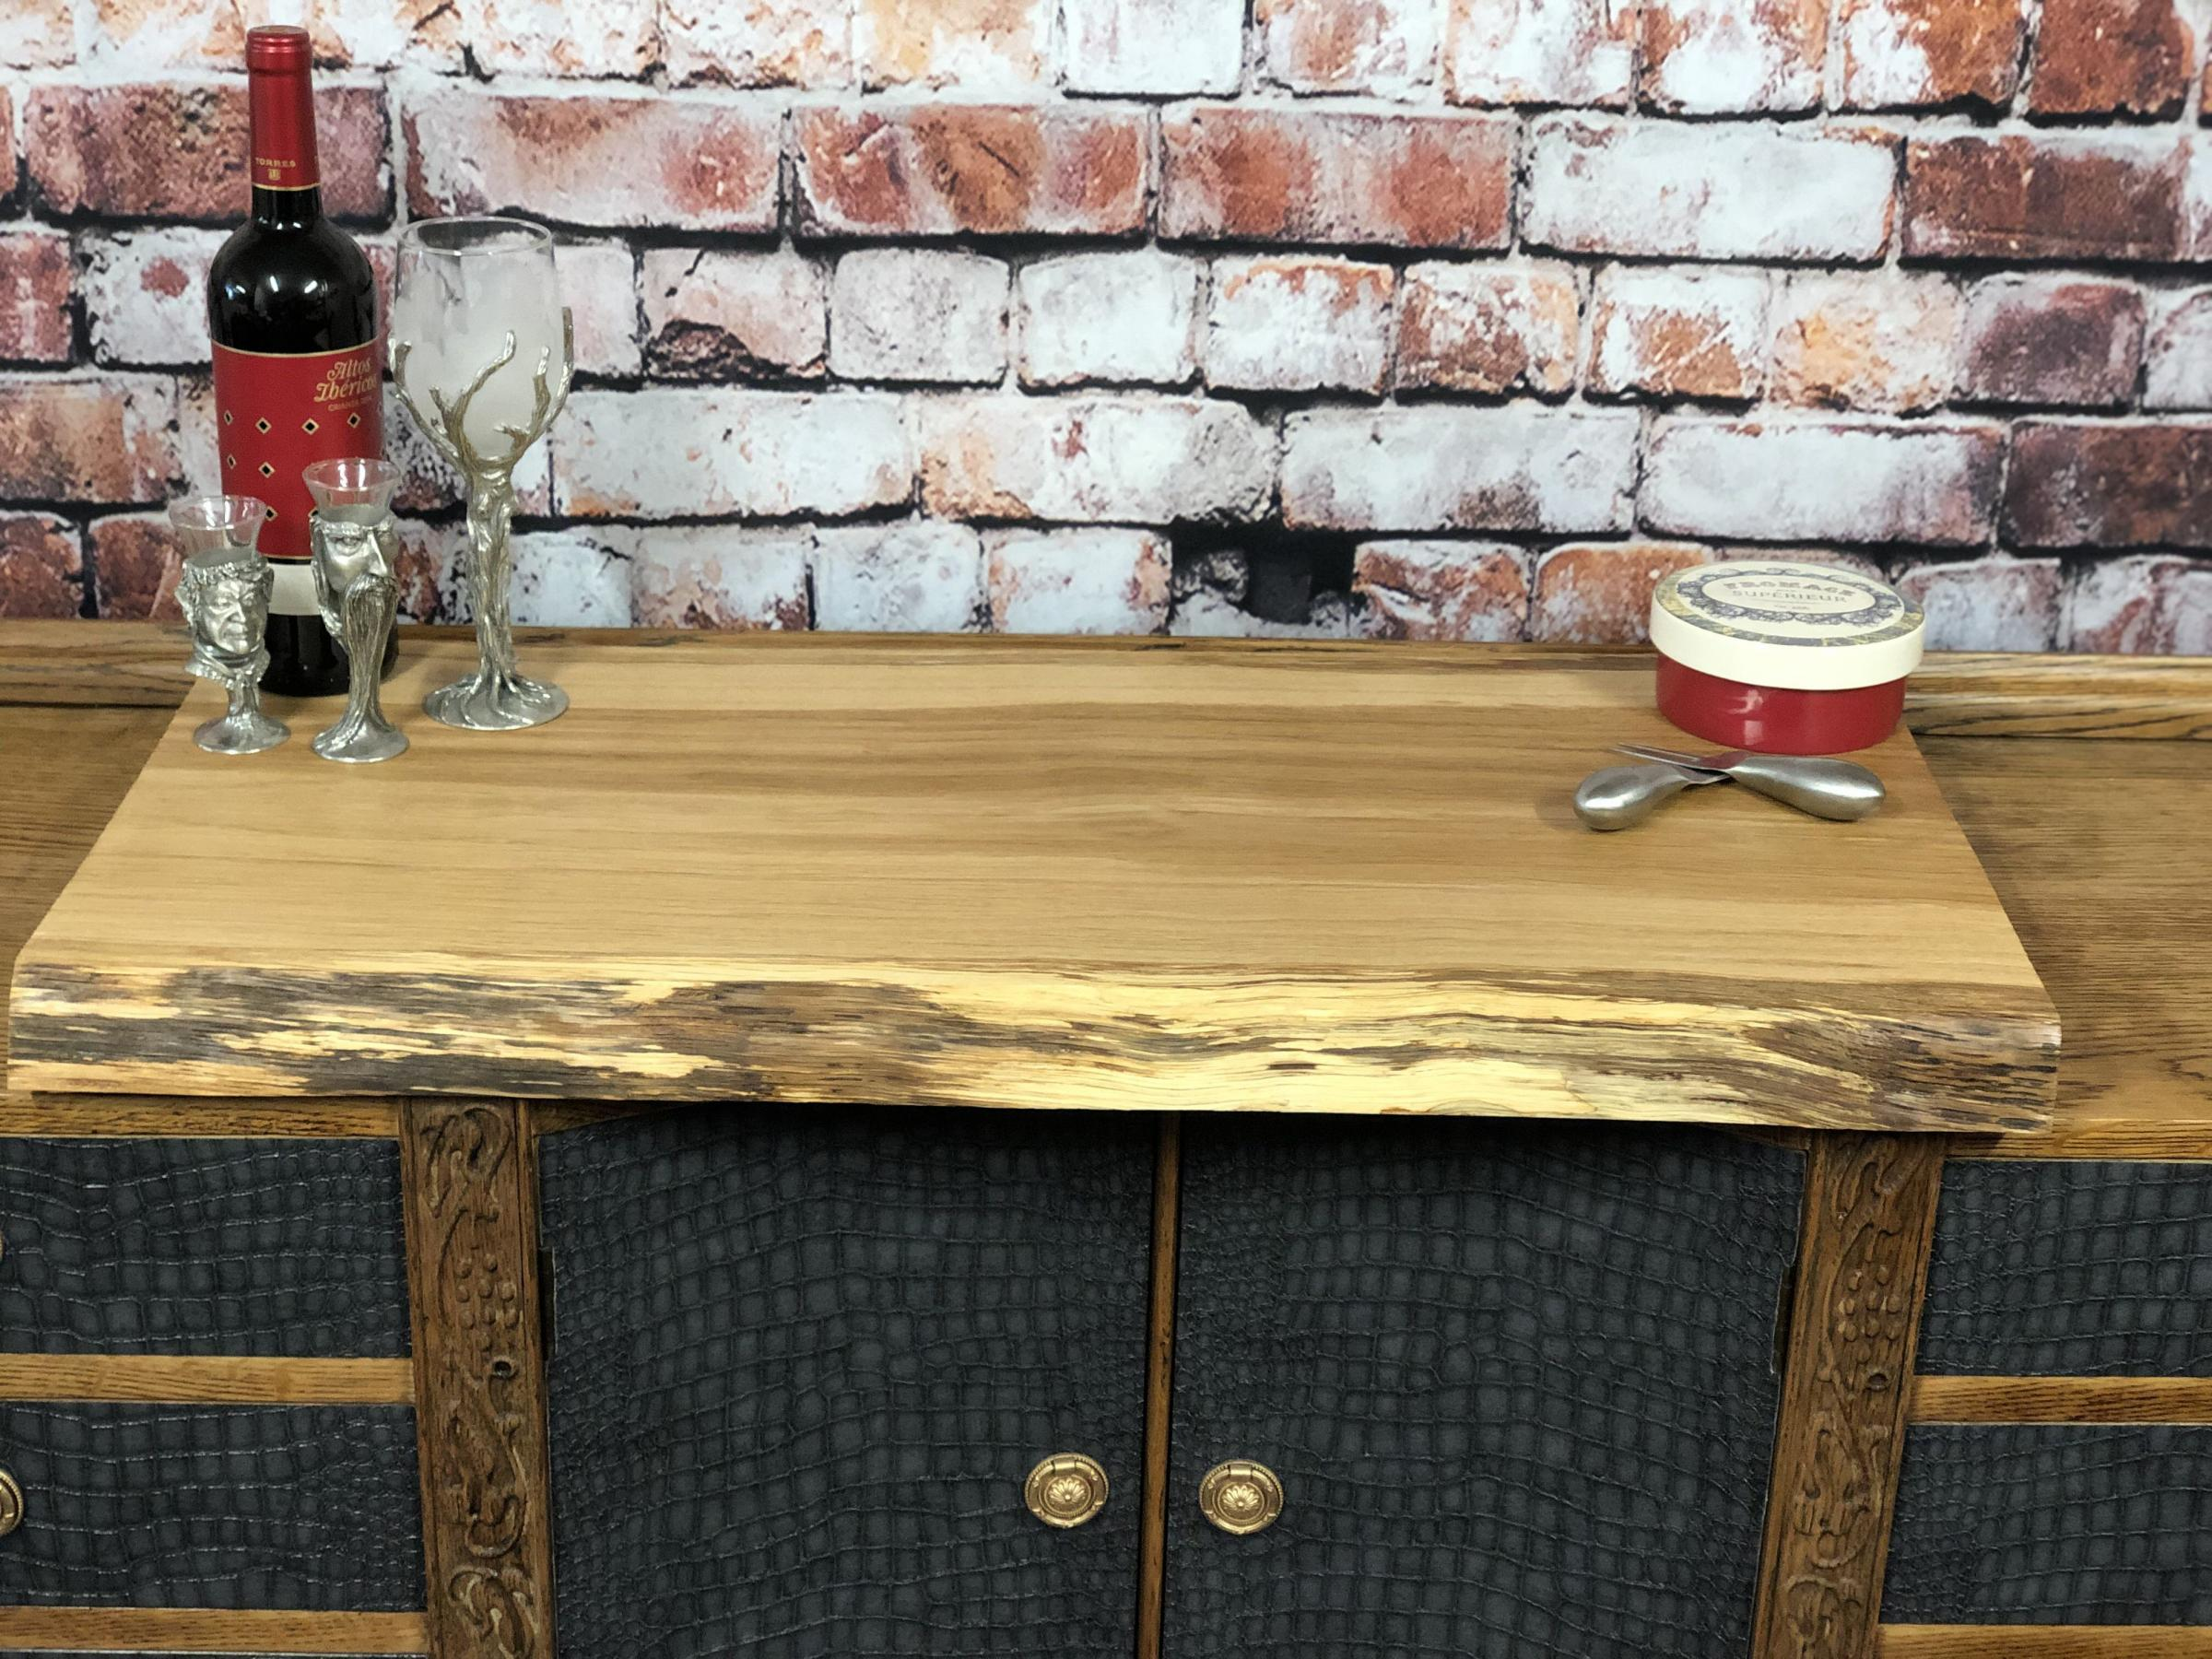 SHOP LOCAL: Discover amazing upcycled creations at city business